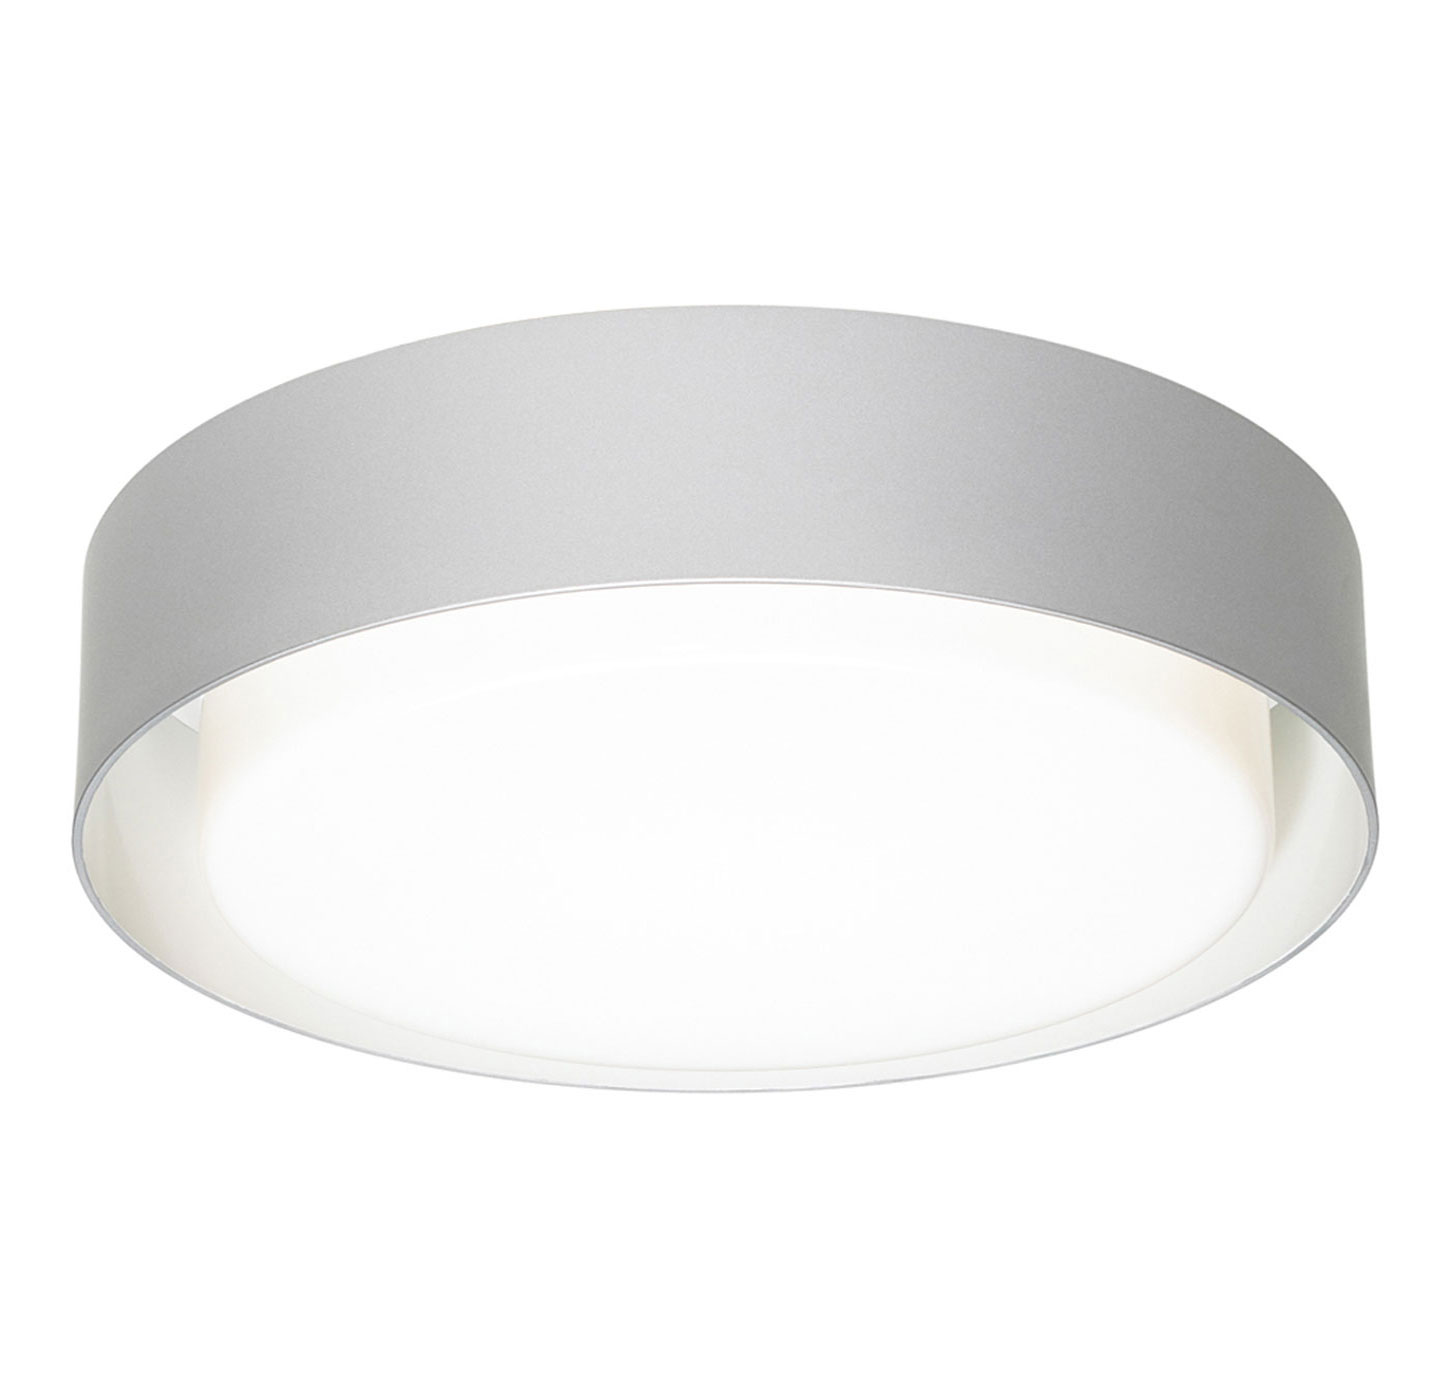 PLAFF-ON! 50 GREY LED 28.1W